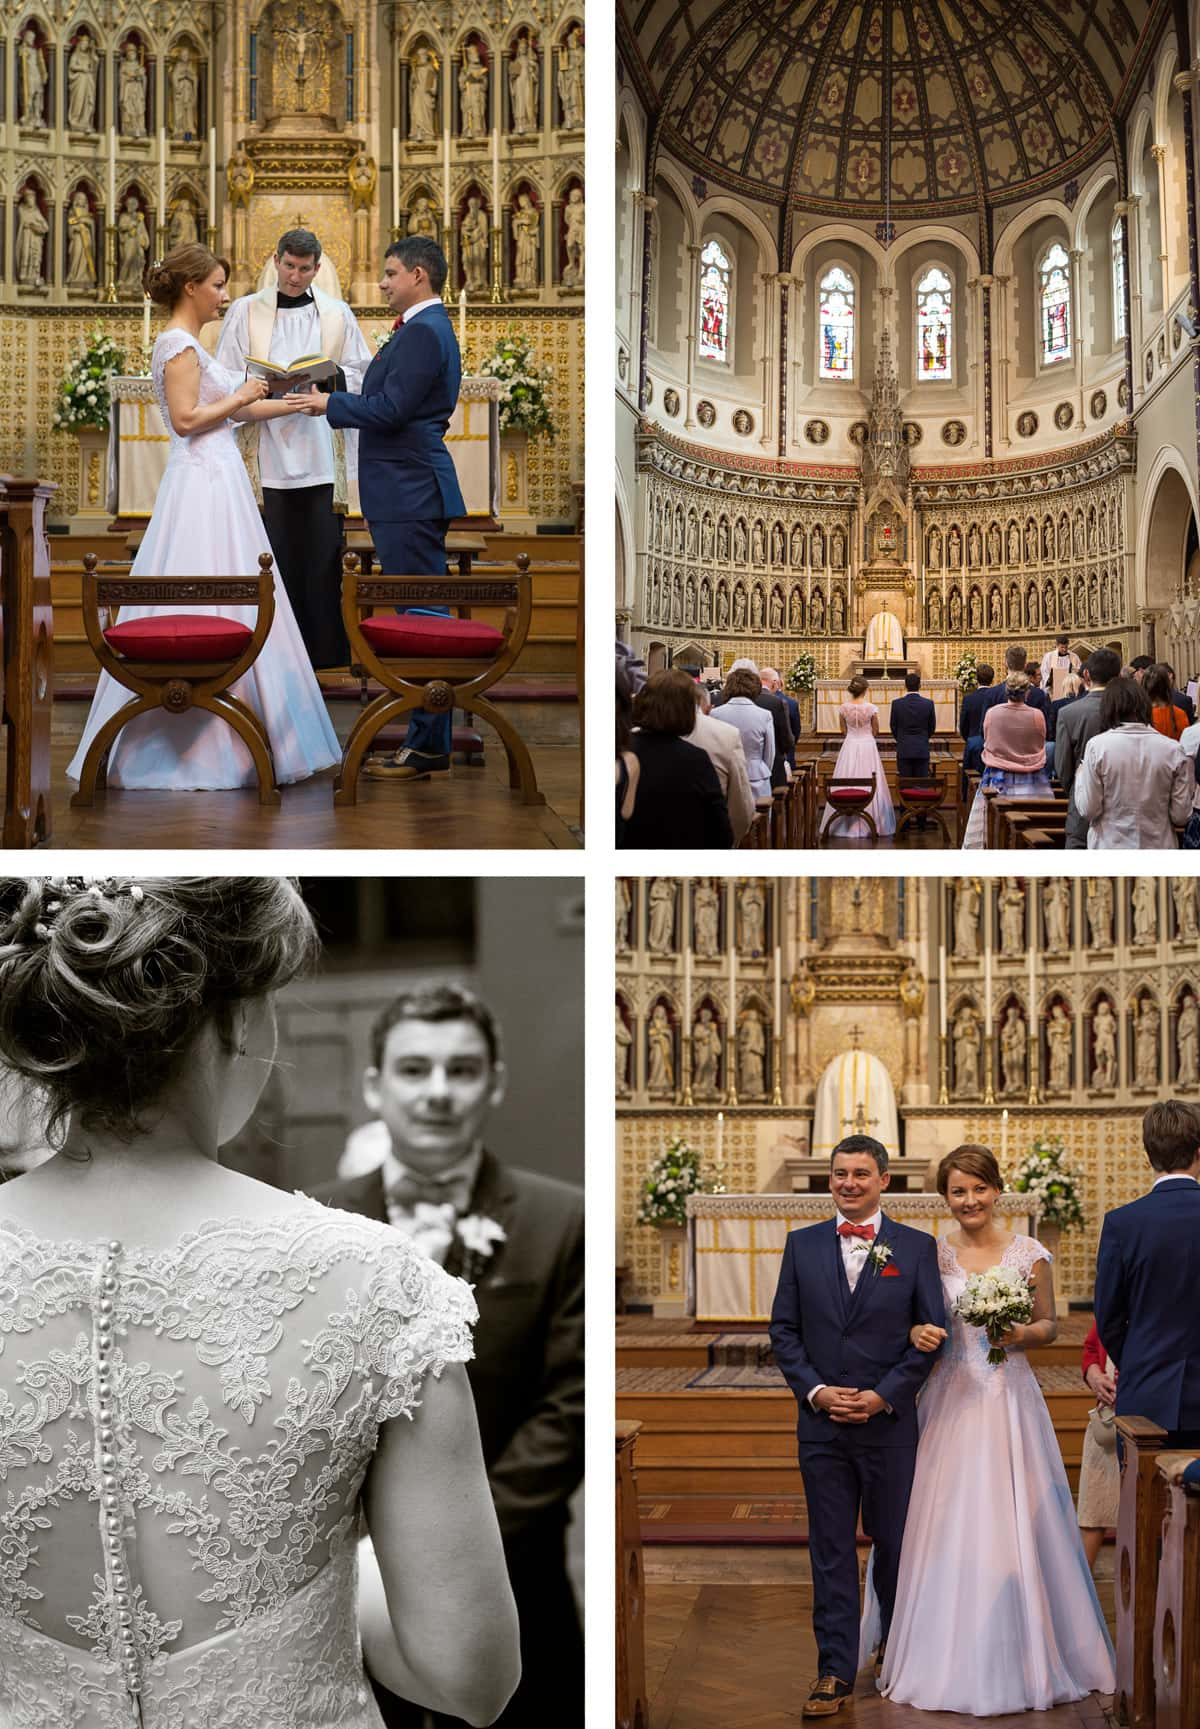 Collage of images from left: Groom holds hands with bride at altar; shot of congregation and beautiful dome in the church; bride and groom together at the altar; black and white shot of groom from over bride's shoulder